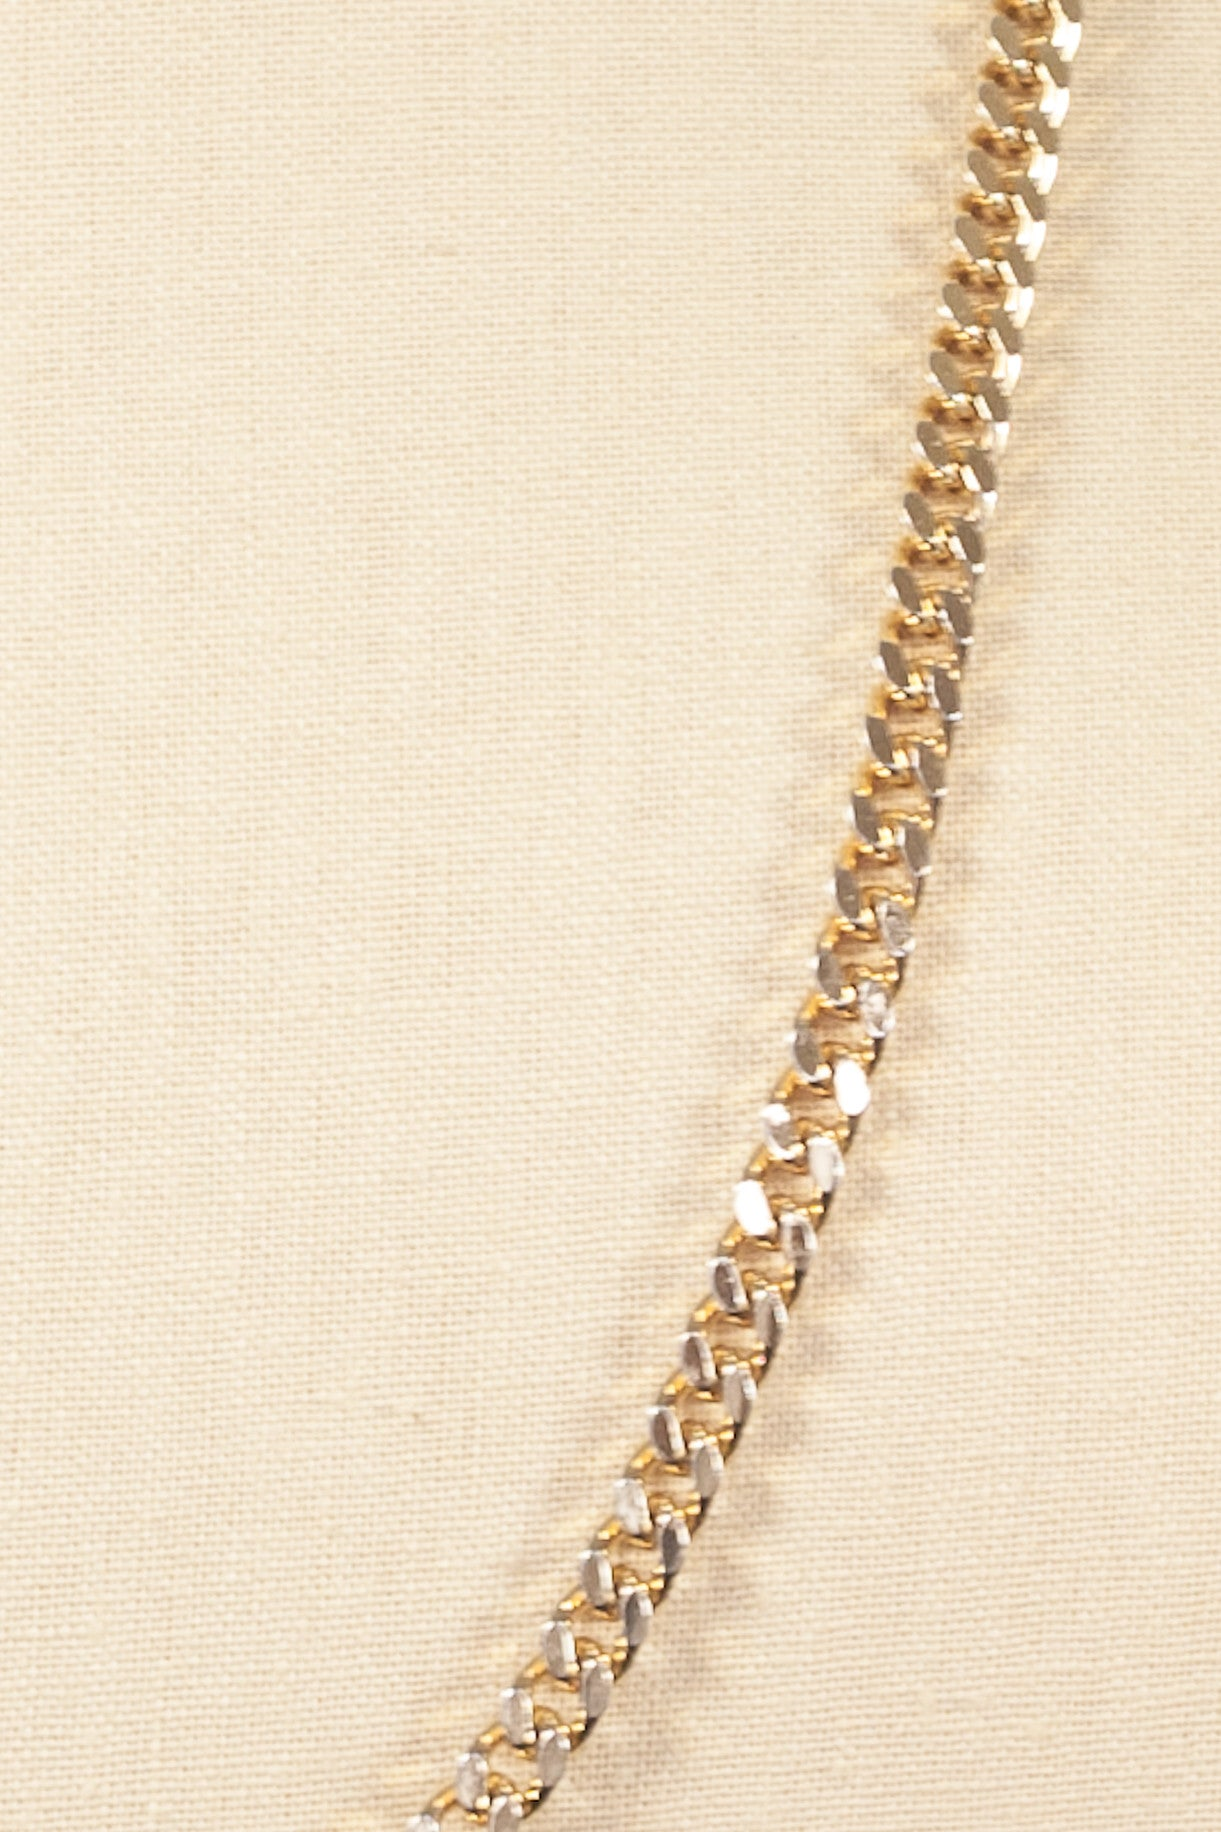 70's__Monet__Curbed Chain Necklace